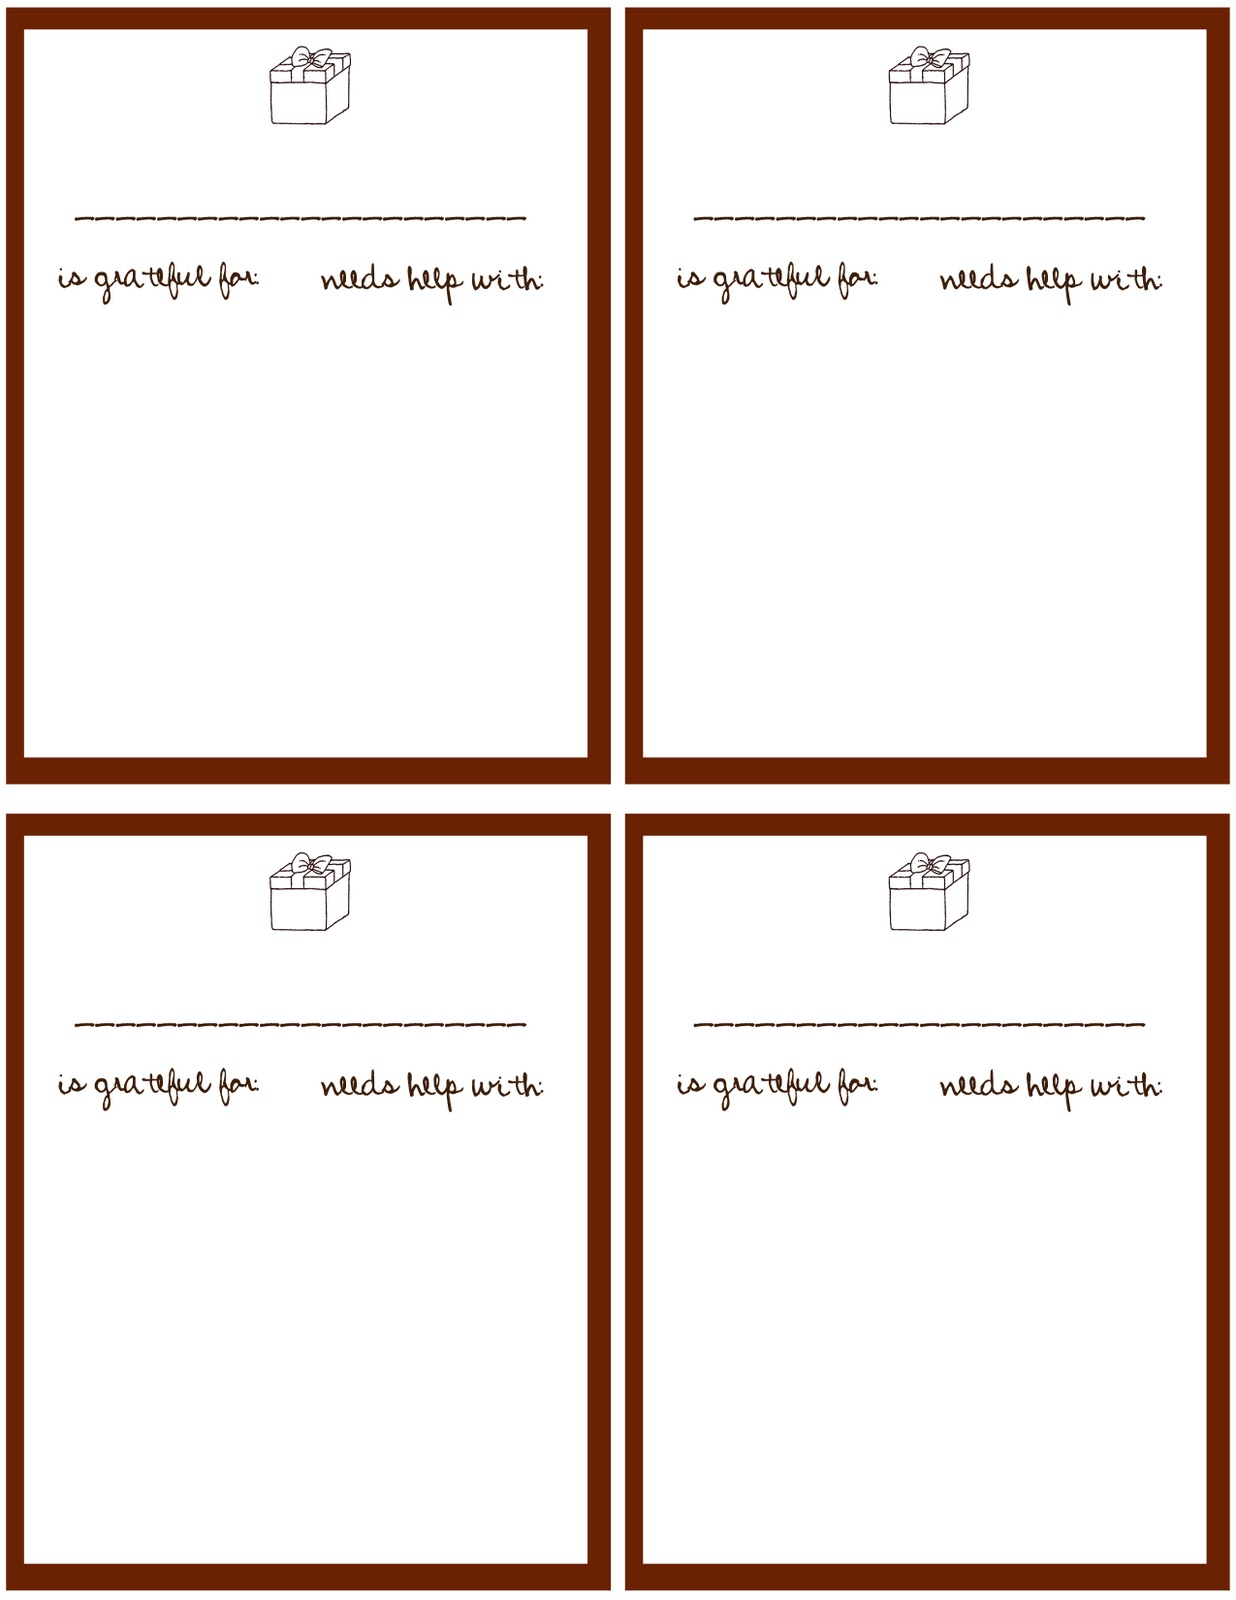 printable prayer cards craftbnb. Black Bedroom Furniture Sets. Home Design Ideas